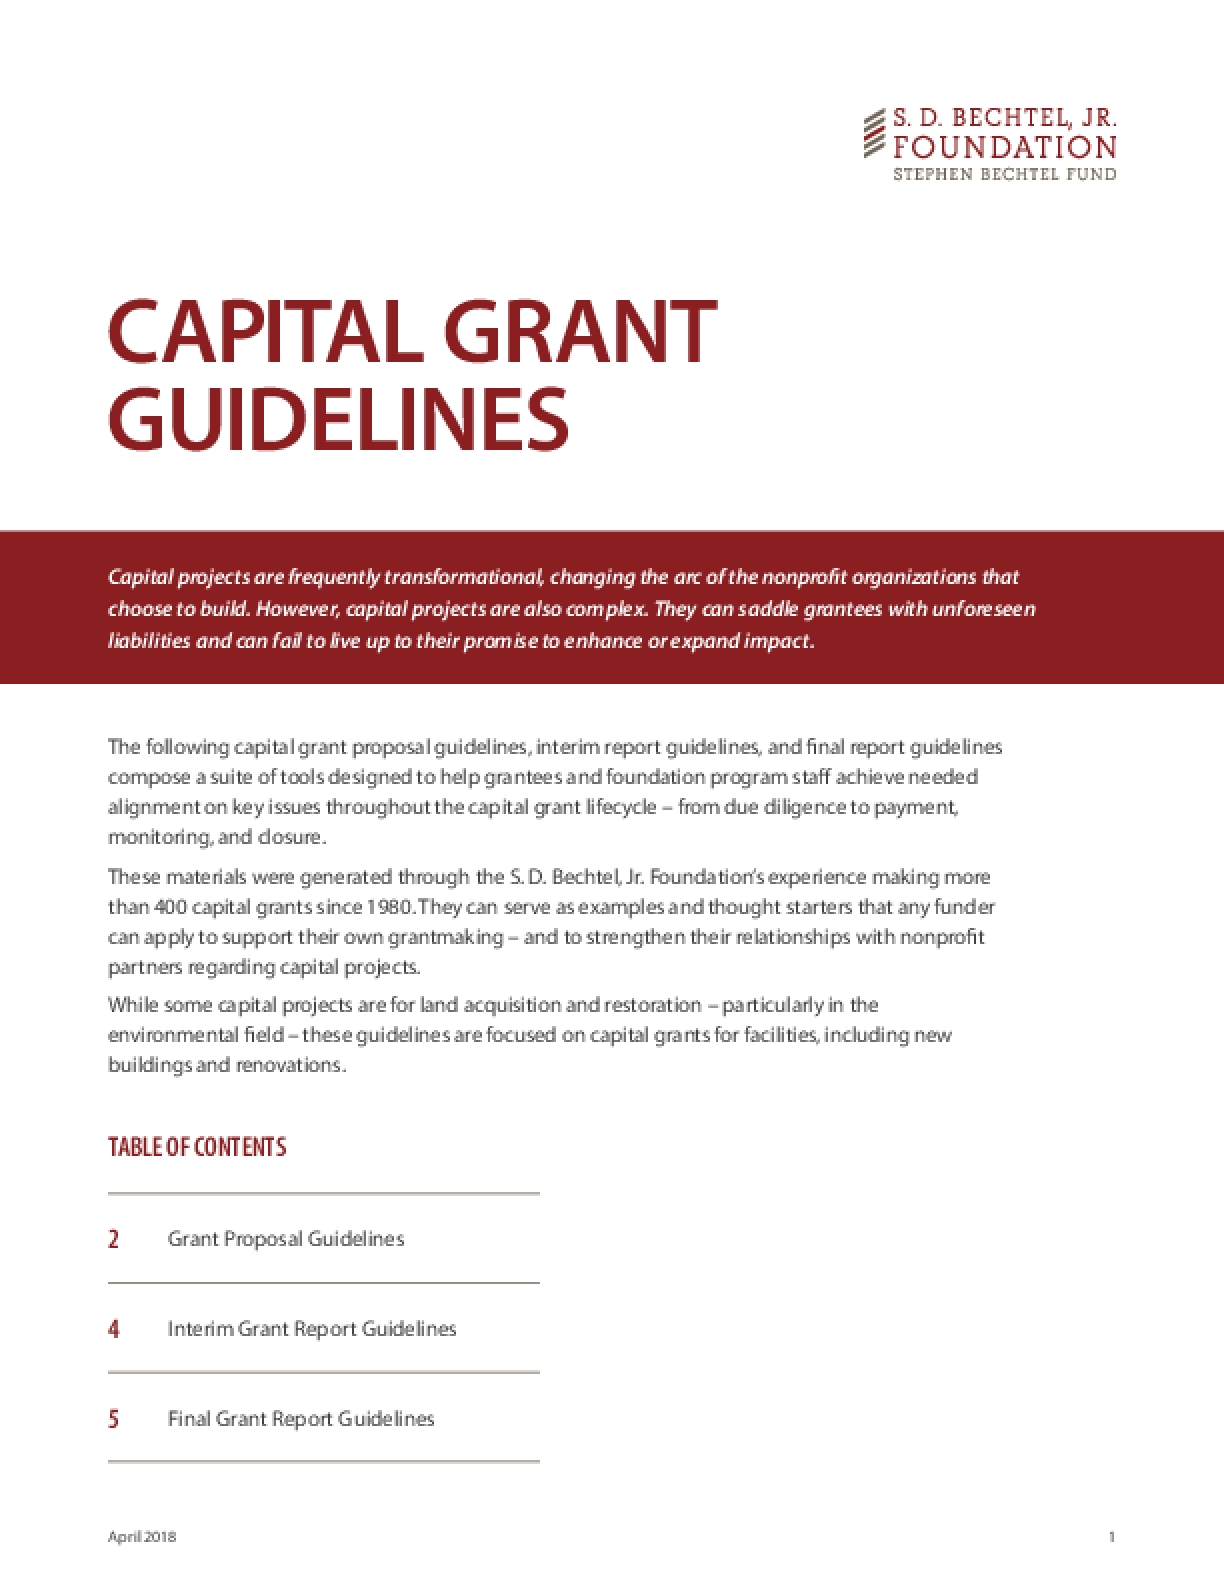 Capital Grant Guidelines